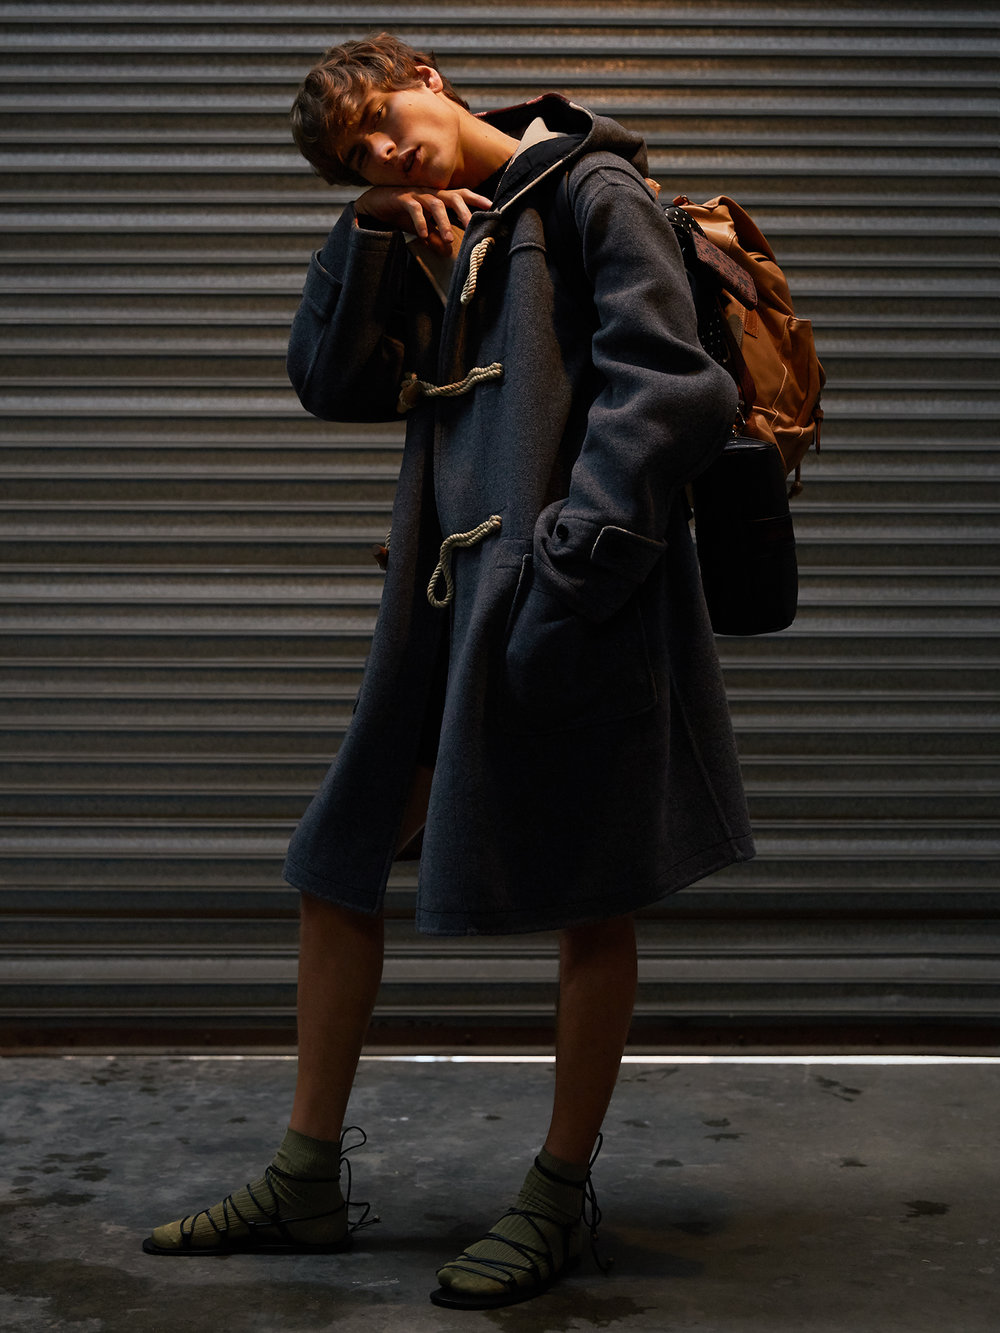 Coat – Burberry , Jumper – Salvatore Ferragamo, Backpack (black & white) – Coach, Backpack (tan) – Hunt Leather, Pouch – Paul Smith, Wallet (floral) - Paul Smith, Necklace – stylist's own, Sandals – Gucci, Socks – stylist's own.